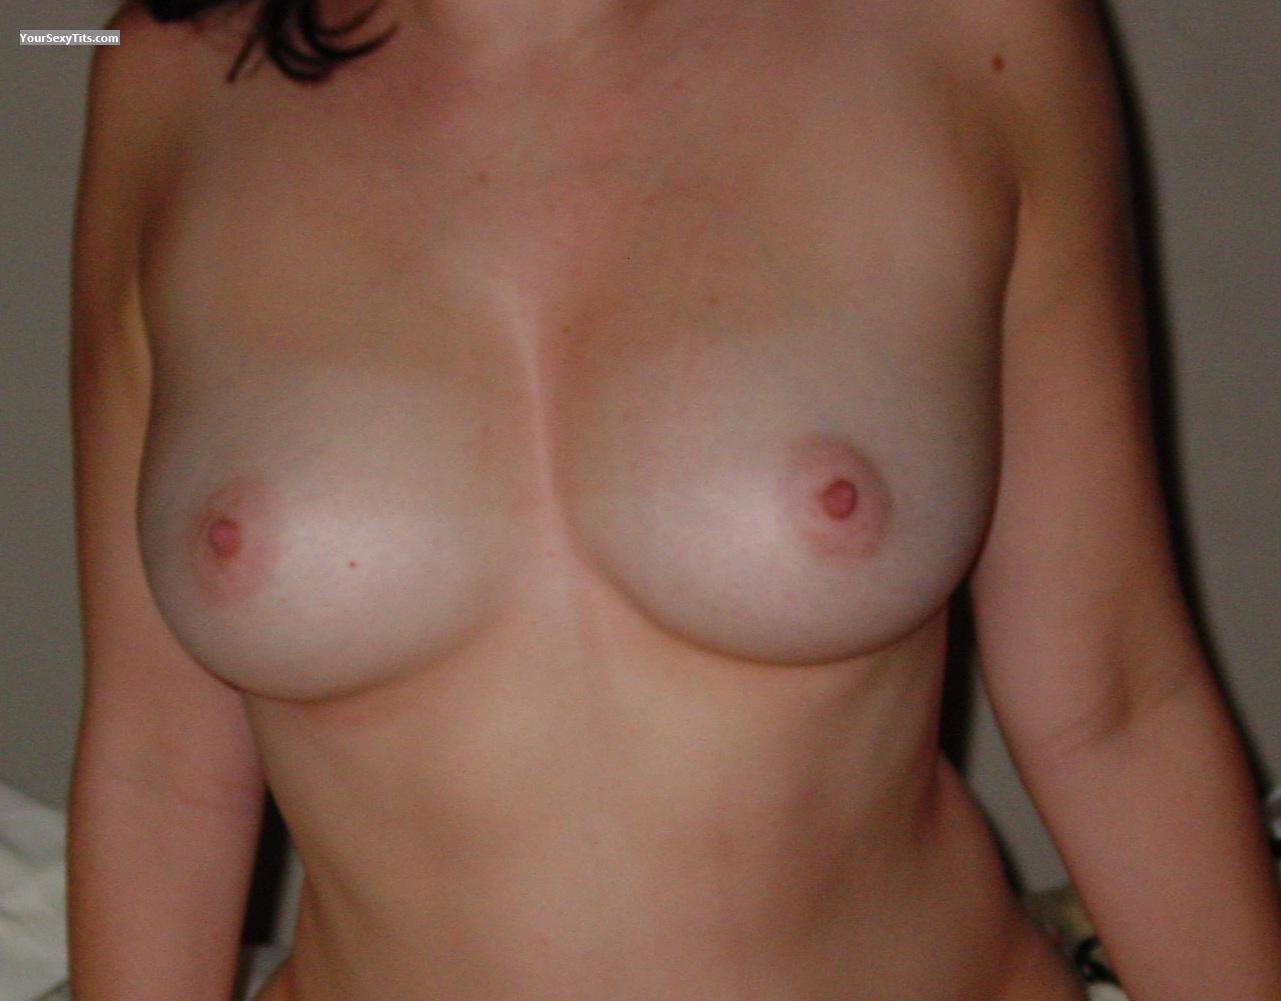 Medium Tits Of My Wife Tittygirl